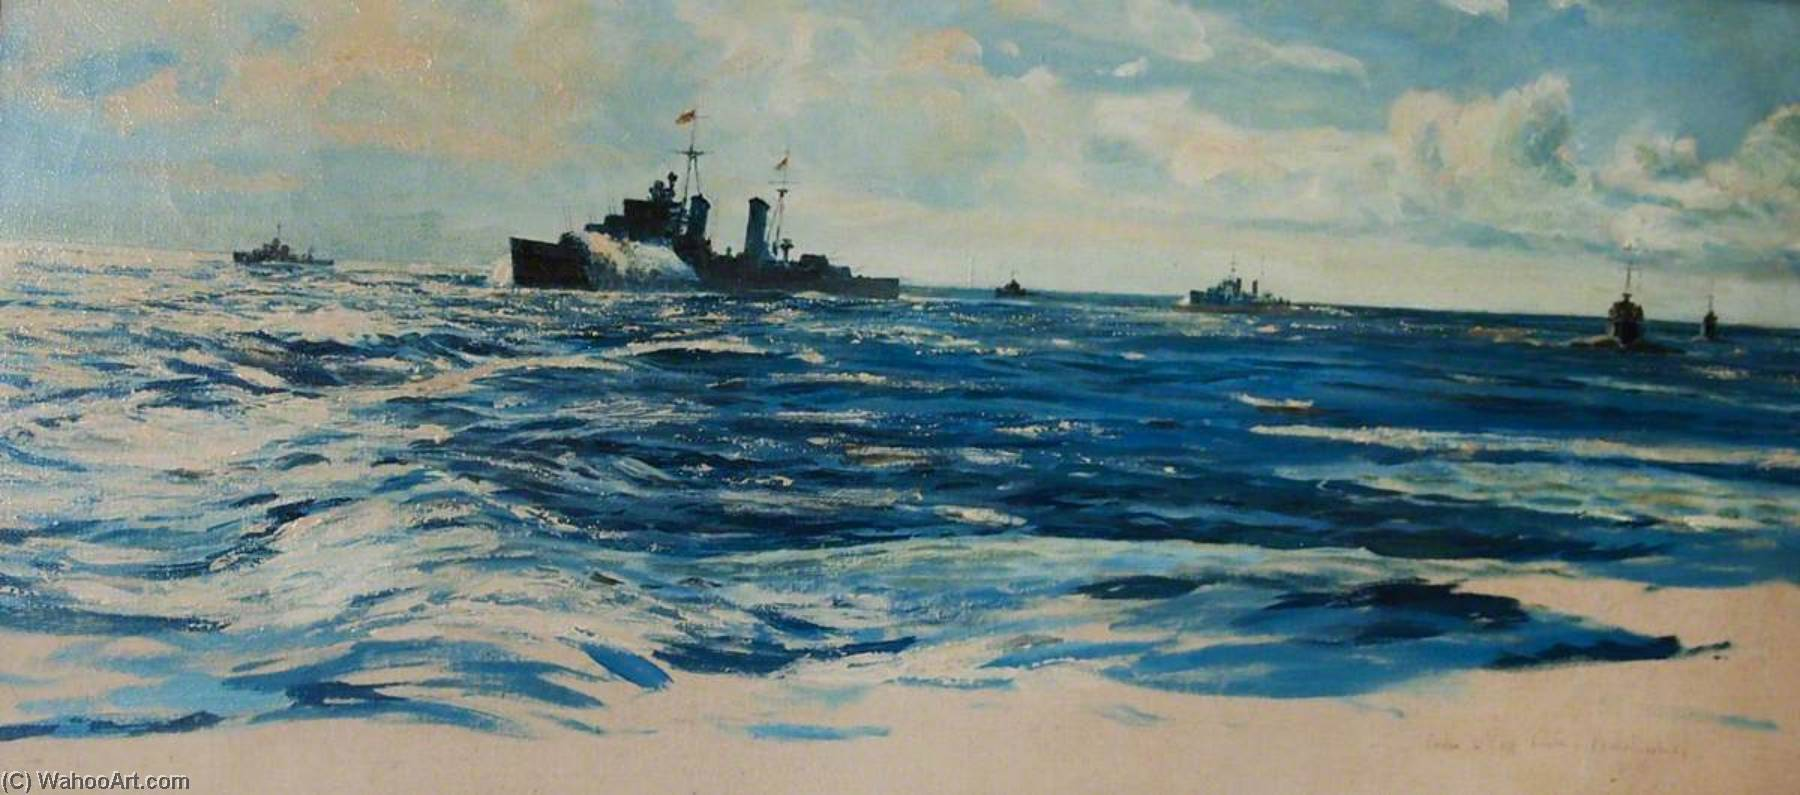 Warships at Sea, Oil On Canvas by Rowland Langmaid